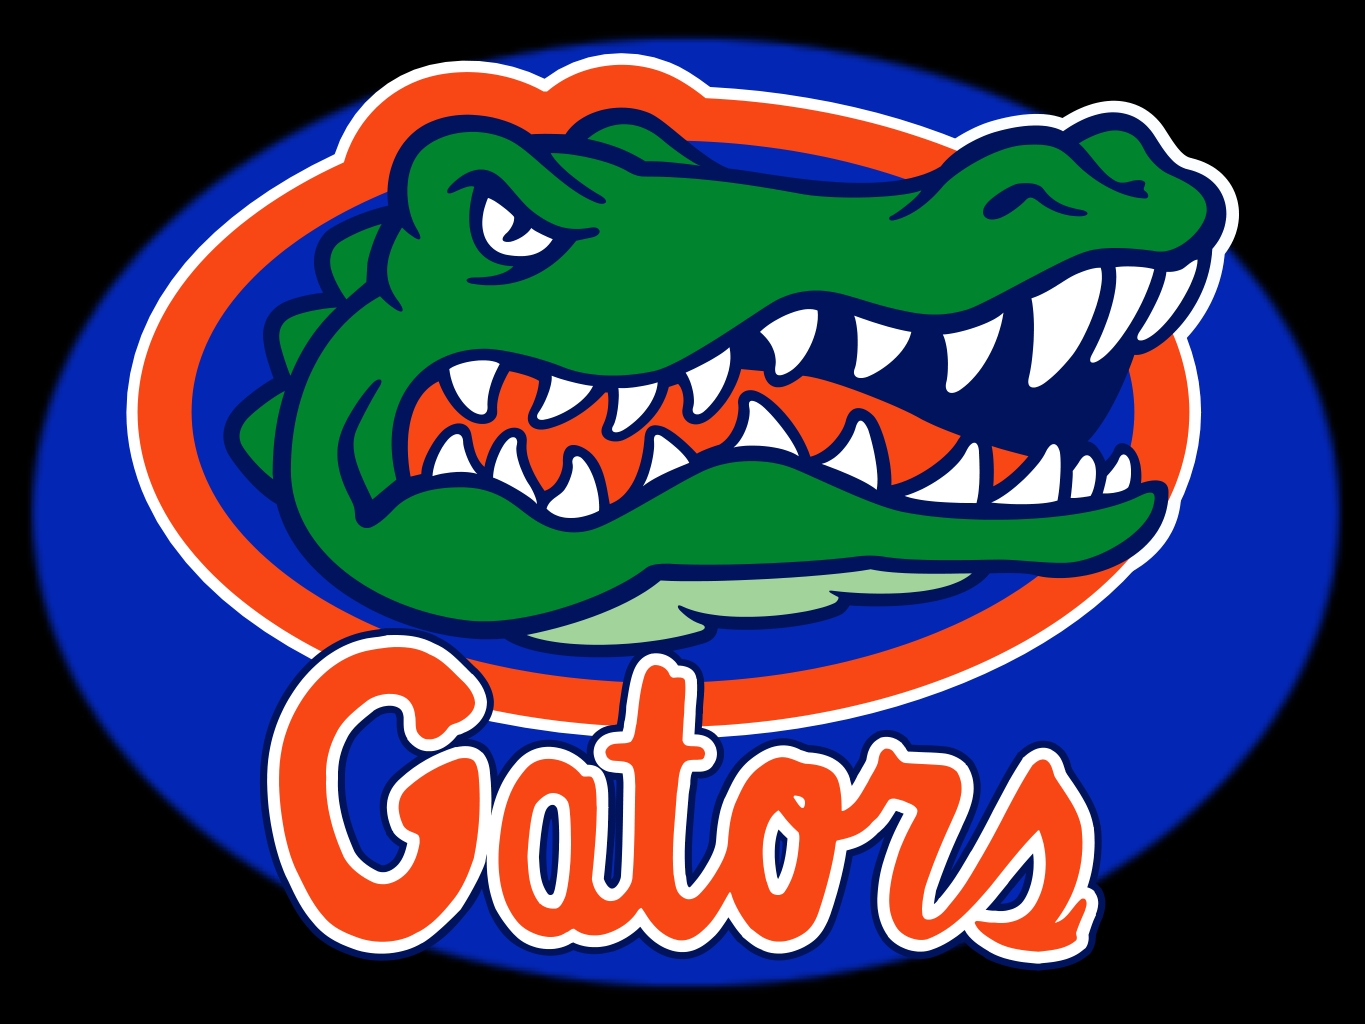 Florida Gators Logo Vector at GetDrawings.com.